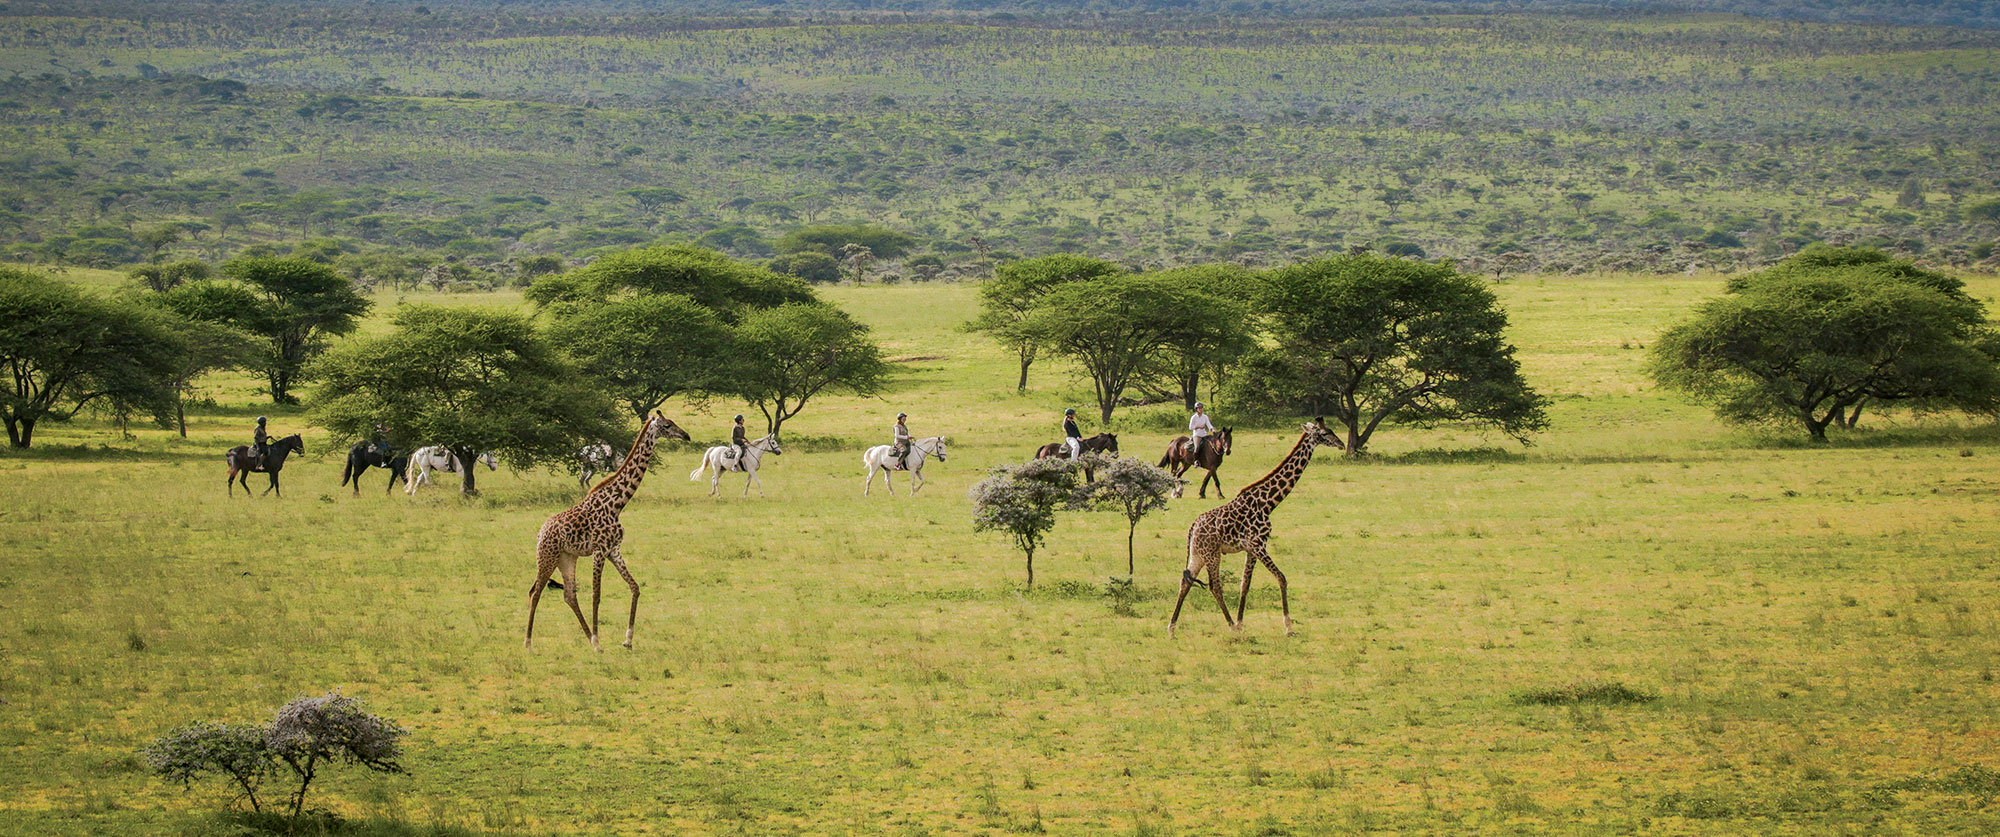 Classic Kenya Luxury Safari Package - Big 5 Wildlife Safari in Kenya